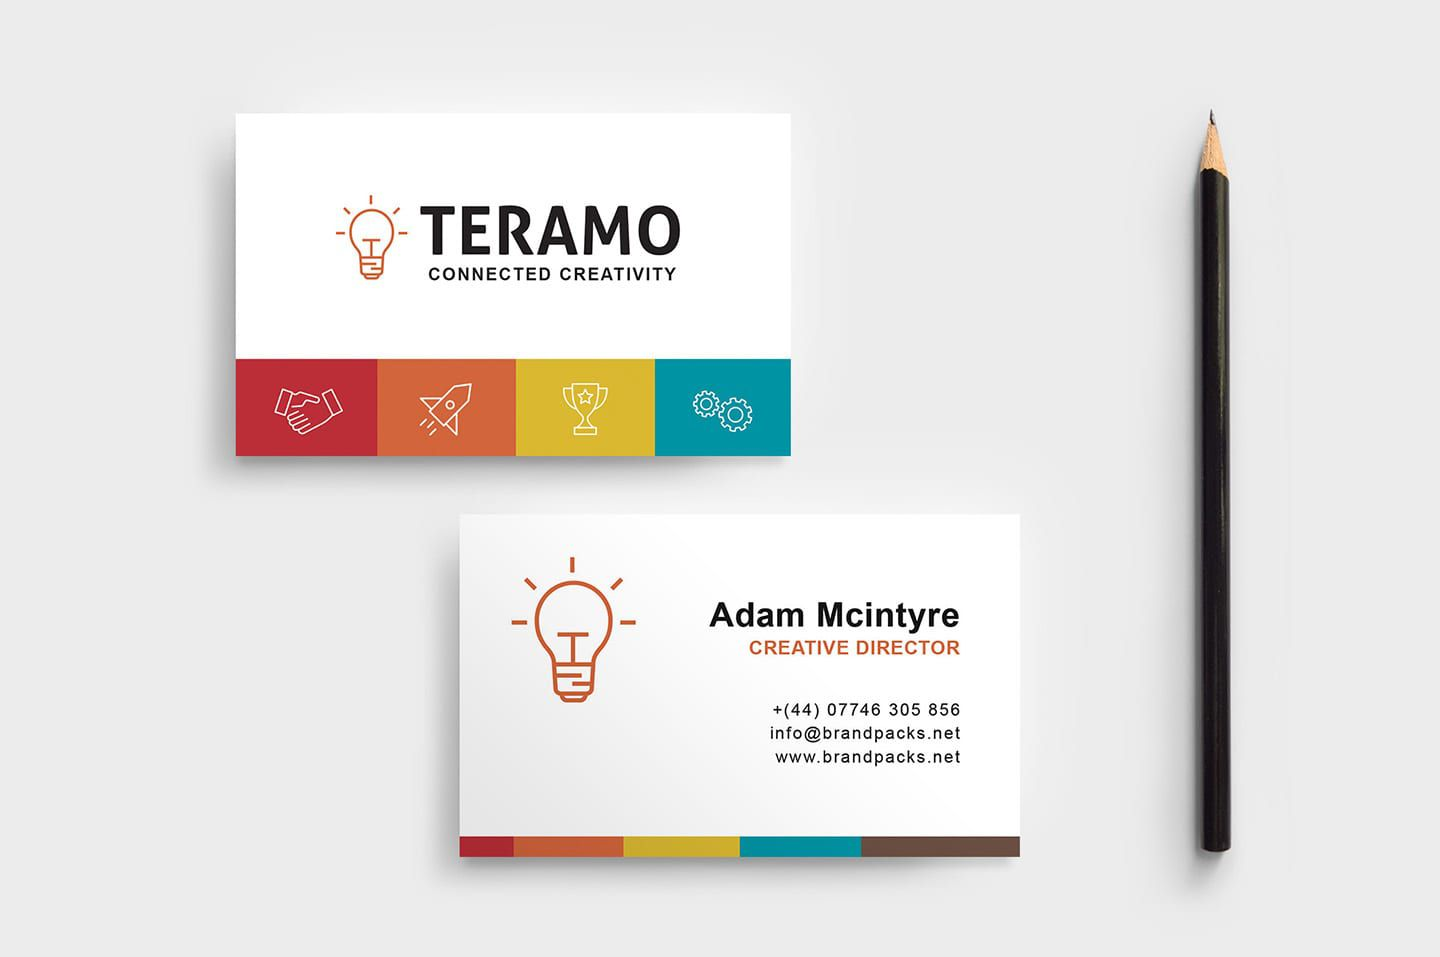 006 Stupendou Free Blank Busines Card Template Photoshop Highest Clarity  Download PsdFull